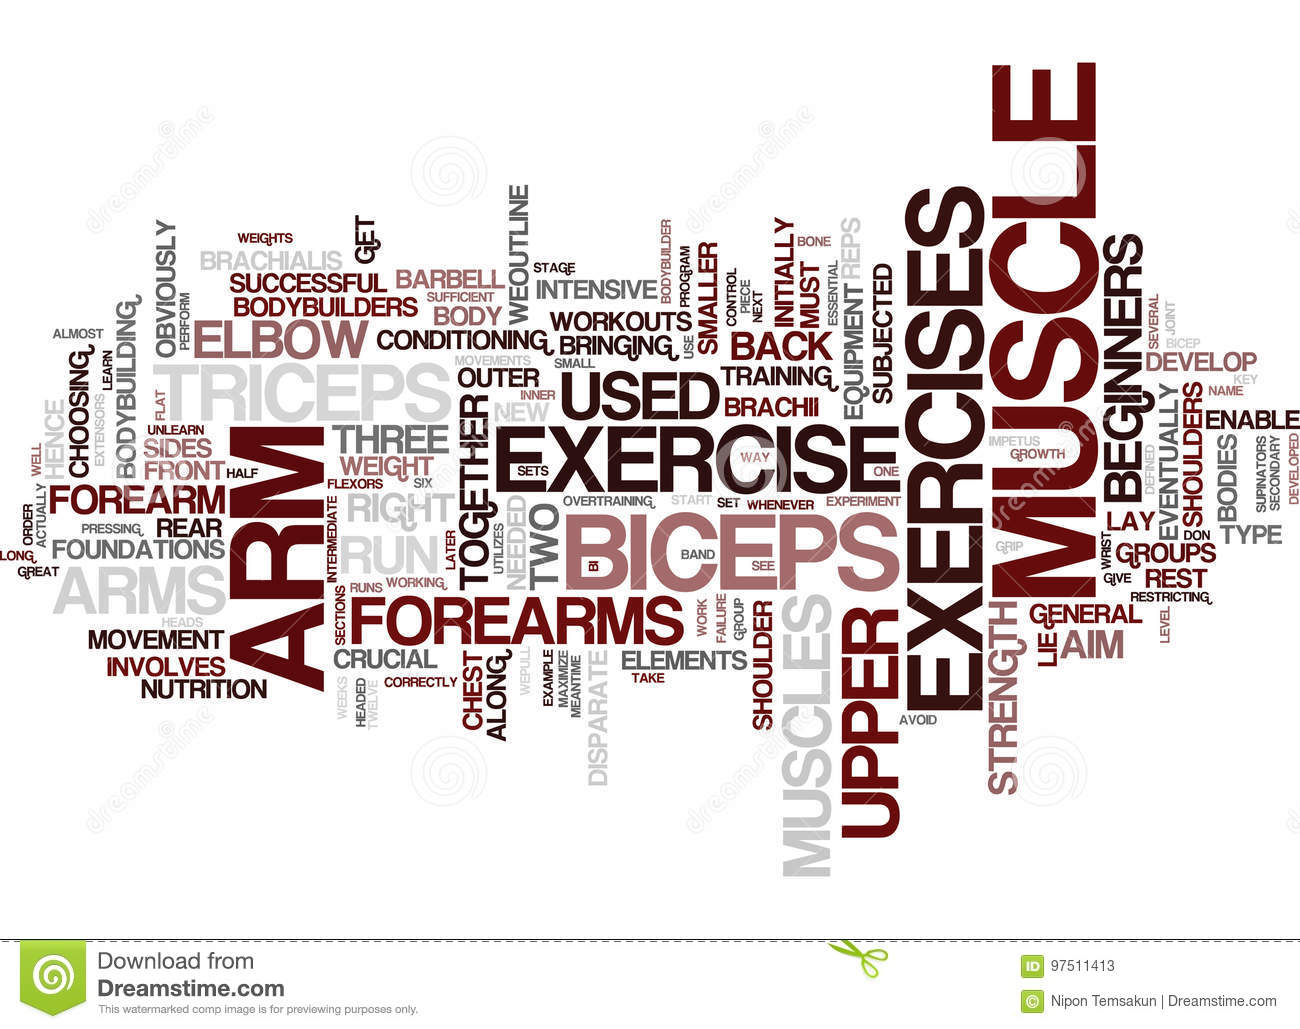 Arm Exercise For Great Arms Word Cloud Concept